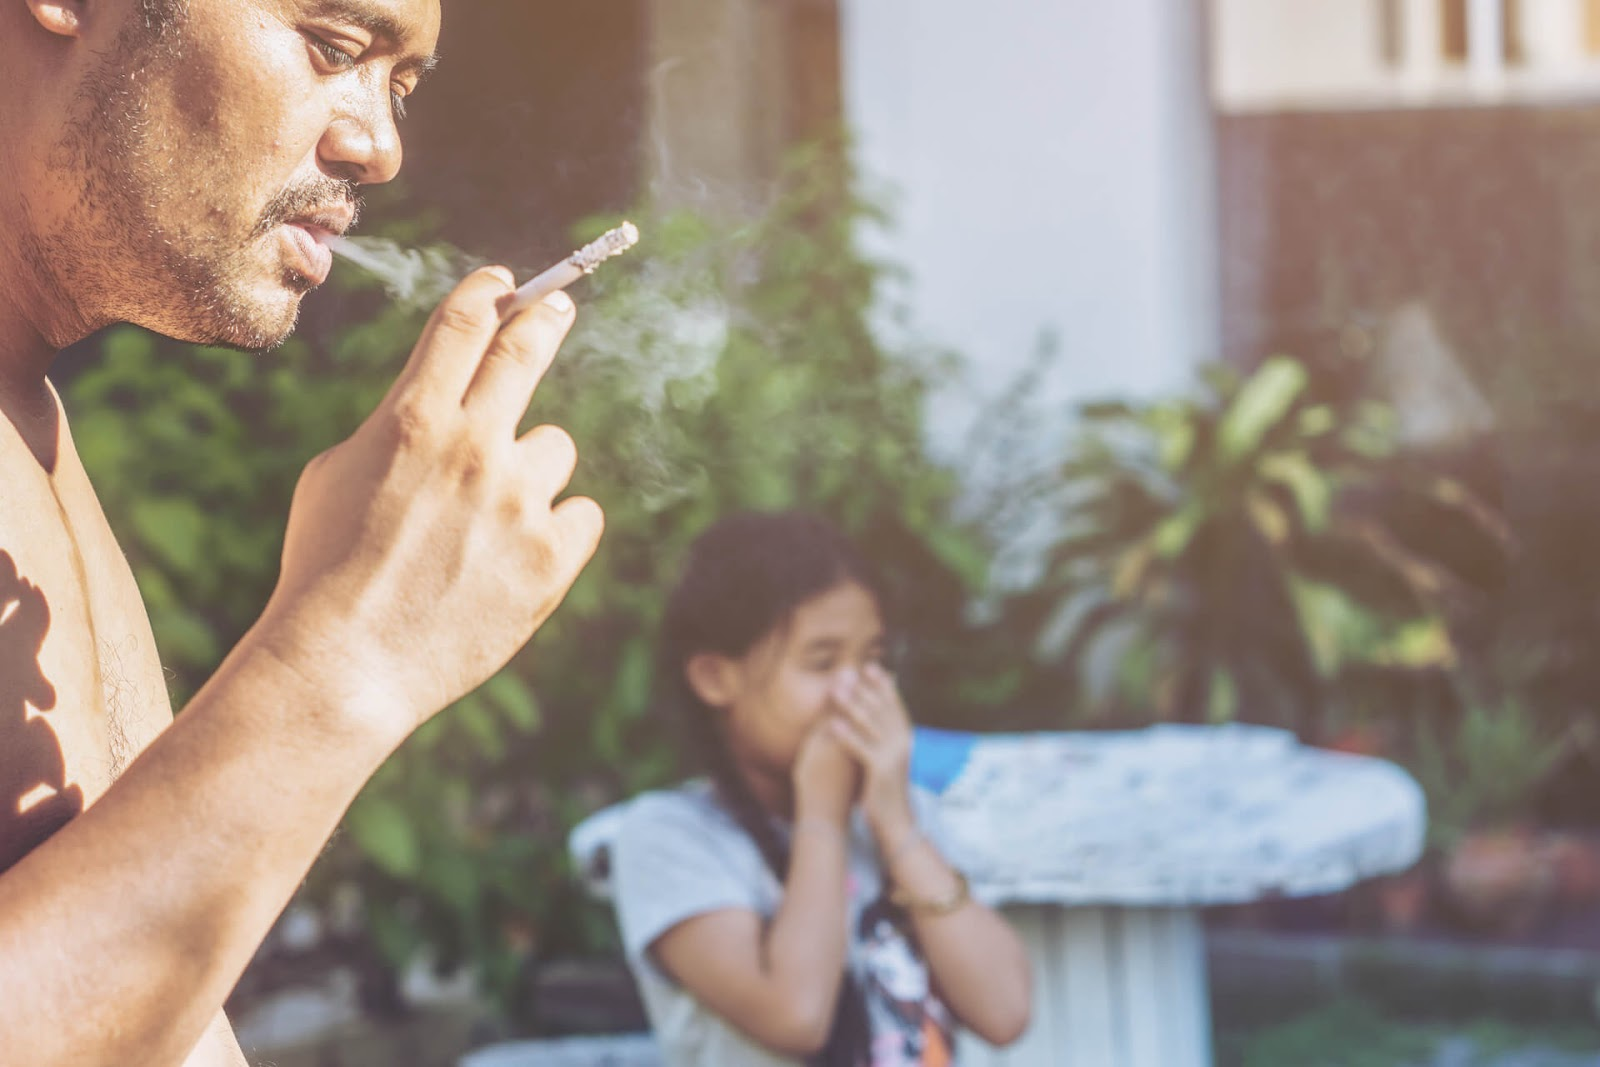 Father smoking a cigarette with daughter in the background